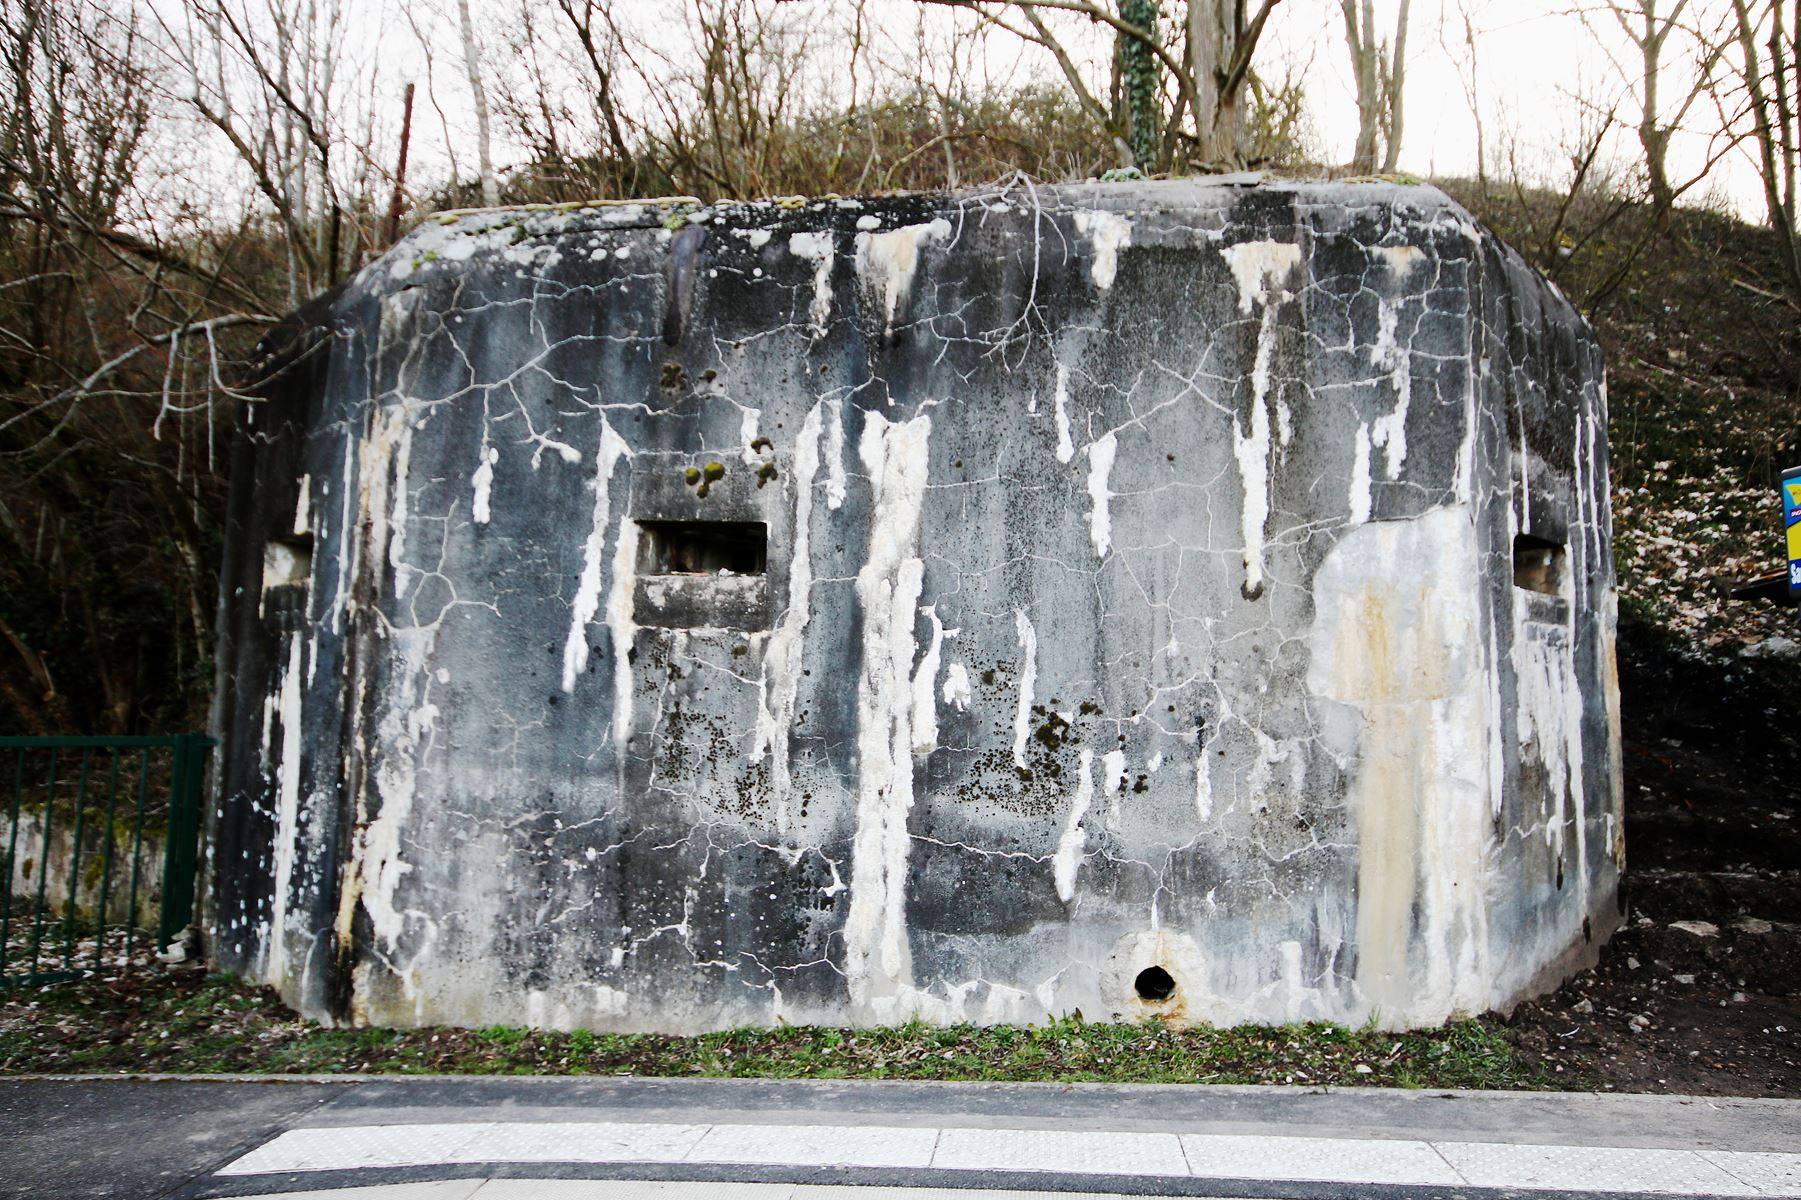 Blockhaus de digue de Wittring